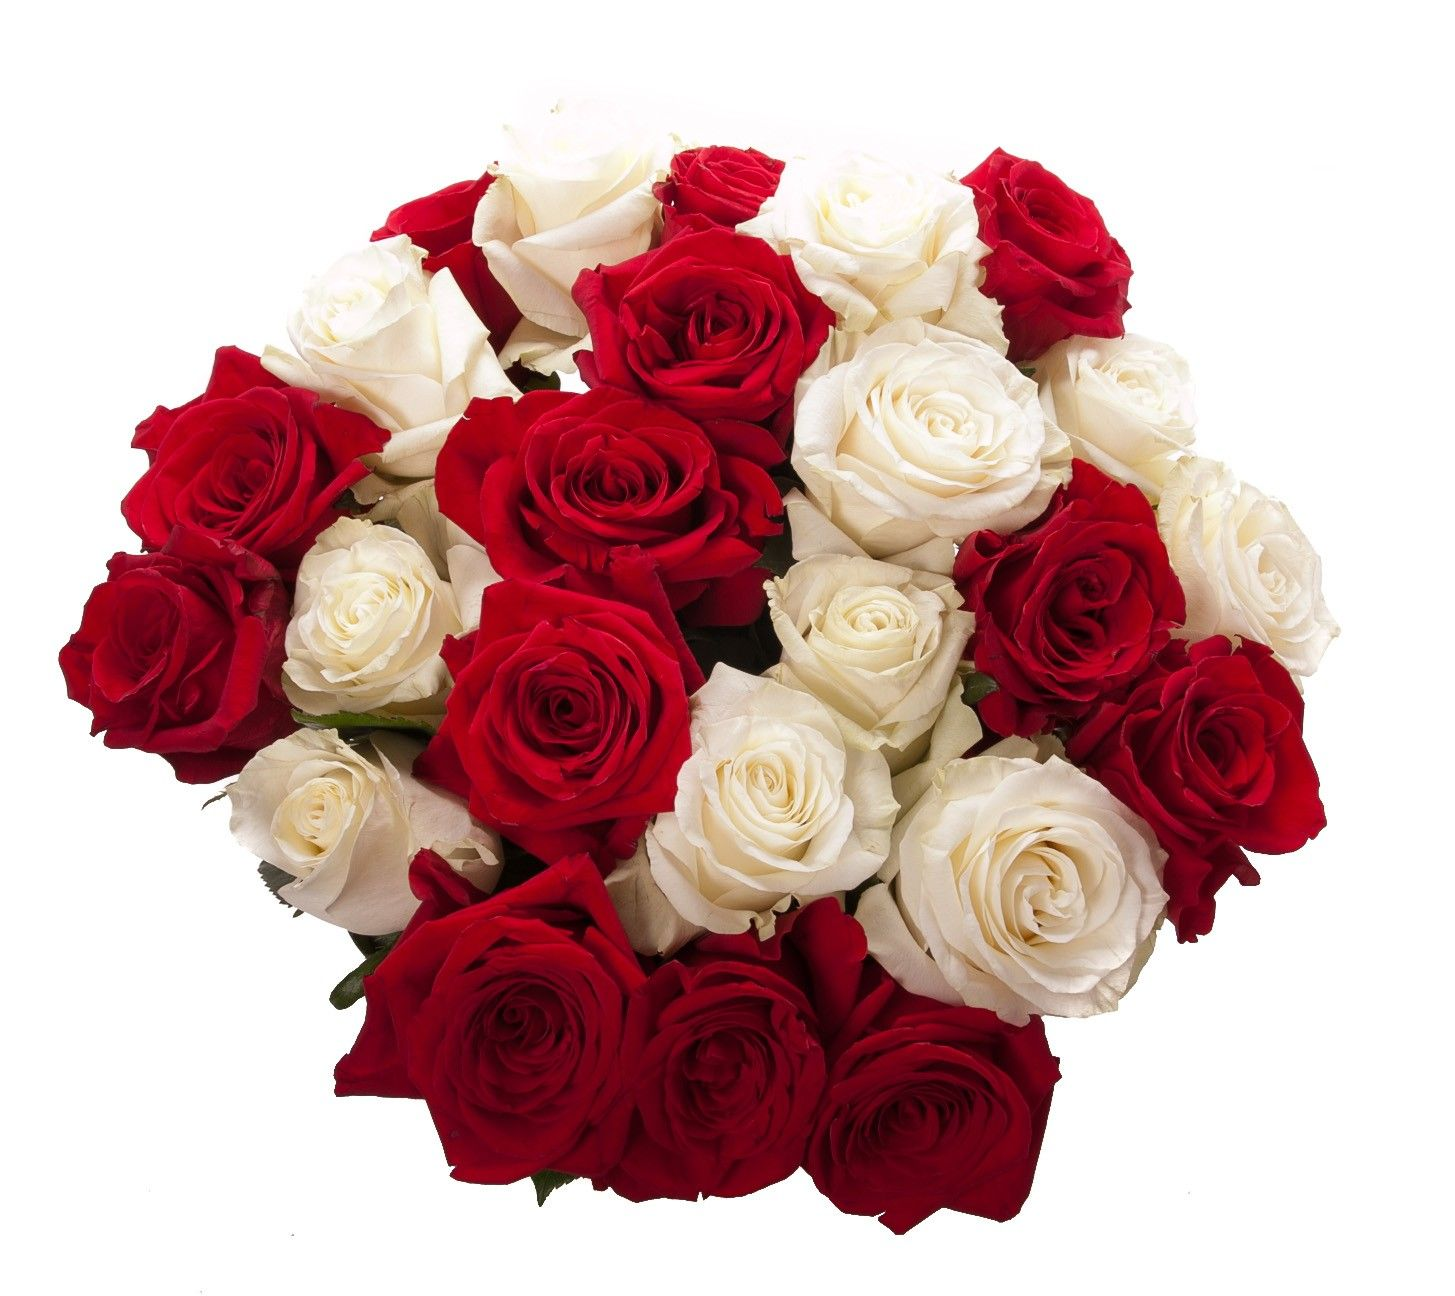 Red and white roses my bouquet sarah nige wedding valentines day rose bouquet red and white the classic red rose mixed with white fair trade and fabulous from flower muse dhlflorist Choice Image